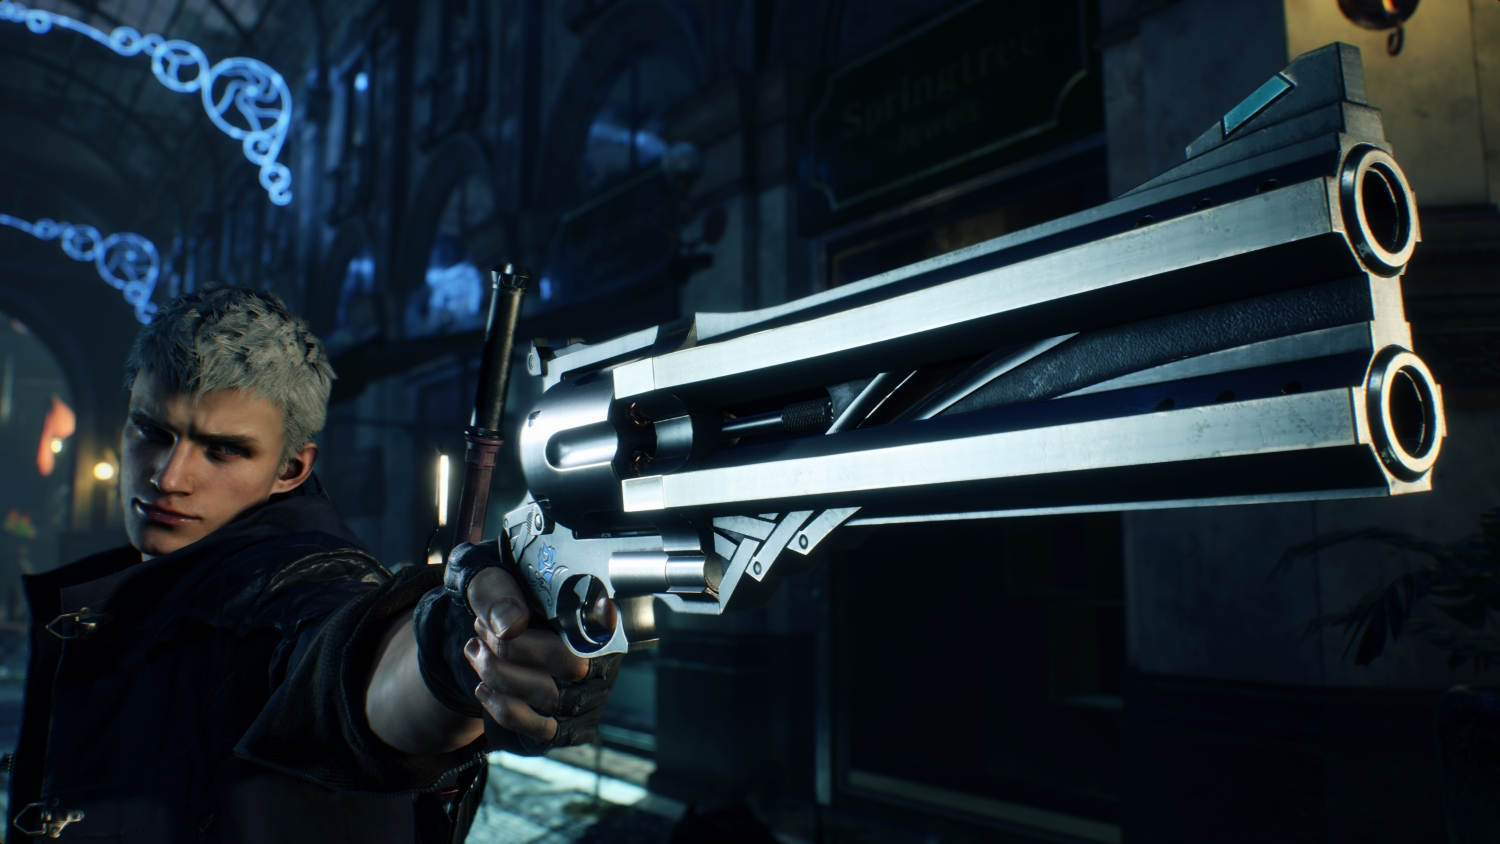 Devil May Cry 5 - Nero is pretty handy in a fight